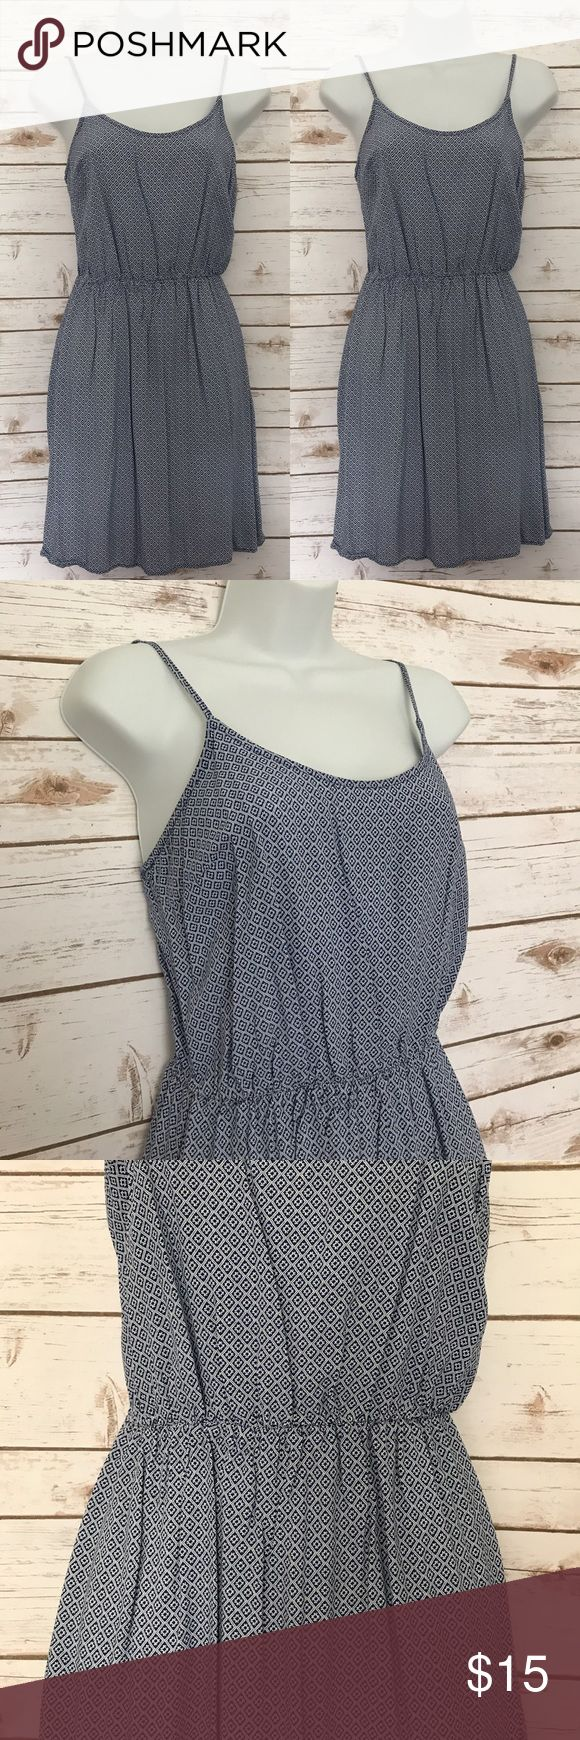 """Old Navy Blue & White Printed Flowy Summer Dress Excellent used condition. No flaws. Only worn a few times. Adjustable straps and elastic waist. Care tag is missing, feels like a cotton blend. 26"""" long down he back. Old Navy Dresses Mini"""